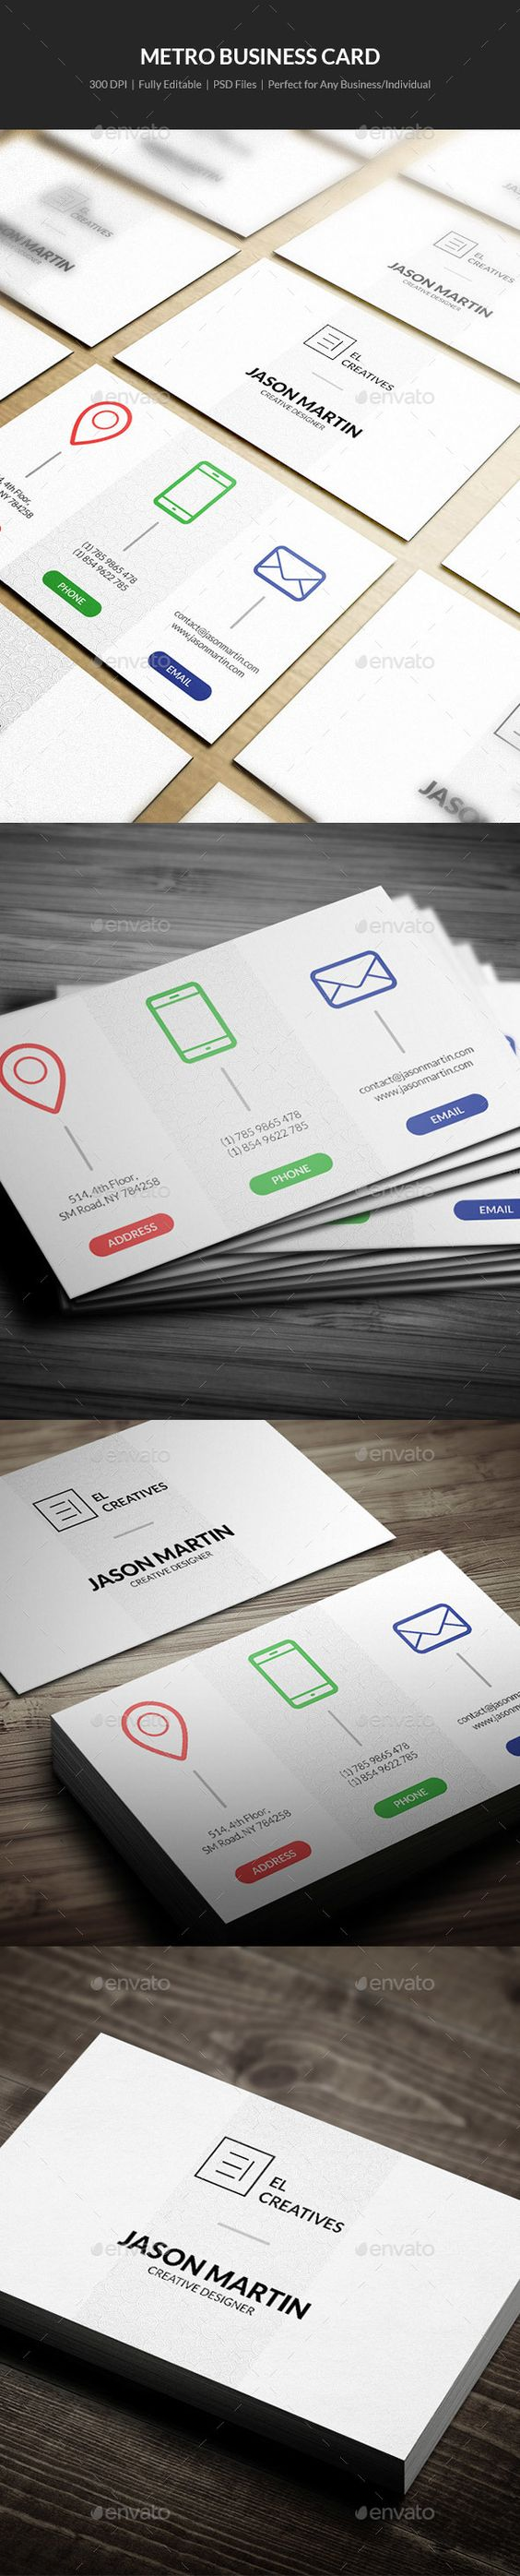 Business Card Perfect For Any Industry Features2 03 5 2 25 X 3 75 With Bleed 3 Business Card Template Design Business Card Template Psd Business Card Design